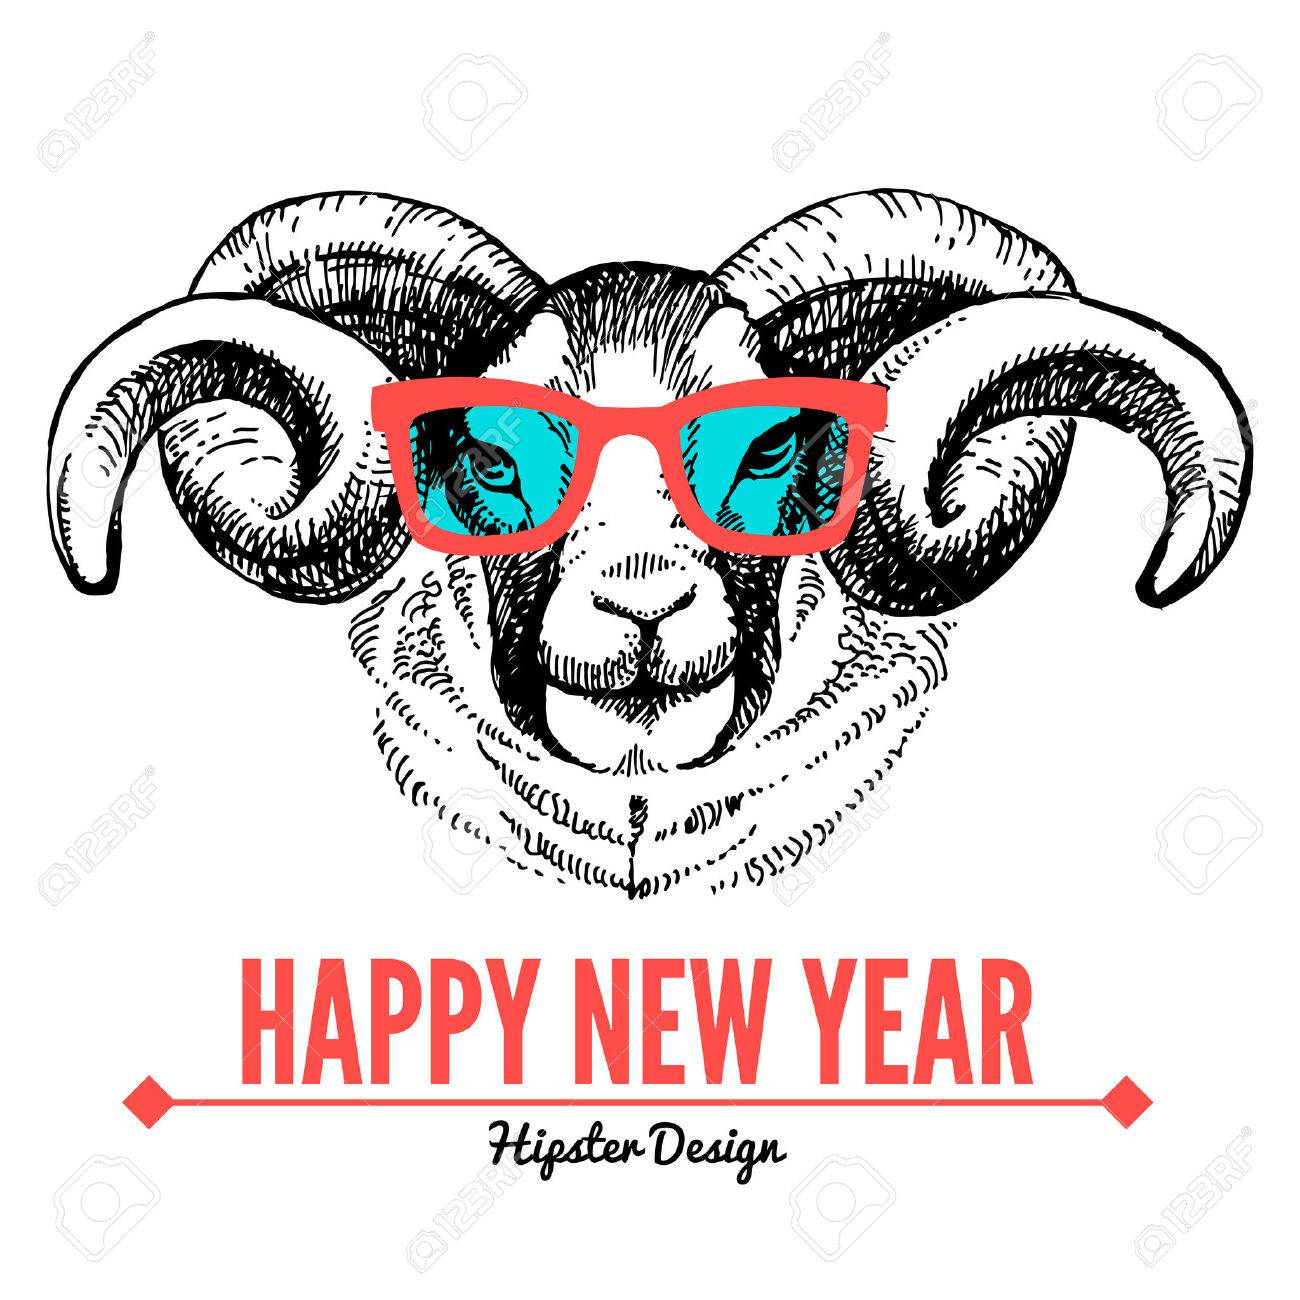 merry christmas and happy new year card with sketch portrait of hipster sheep hand drawn